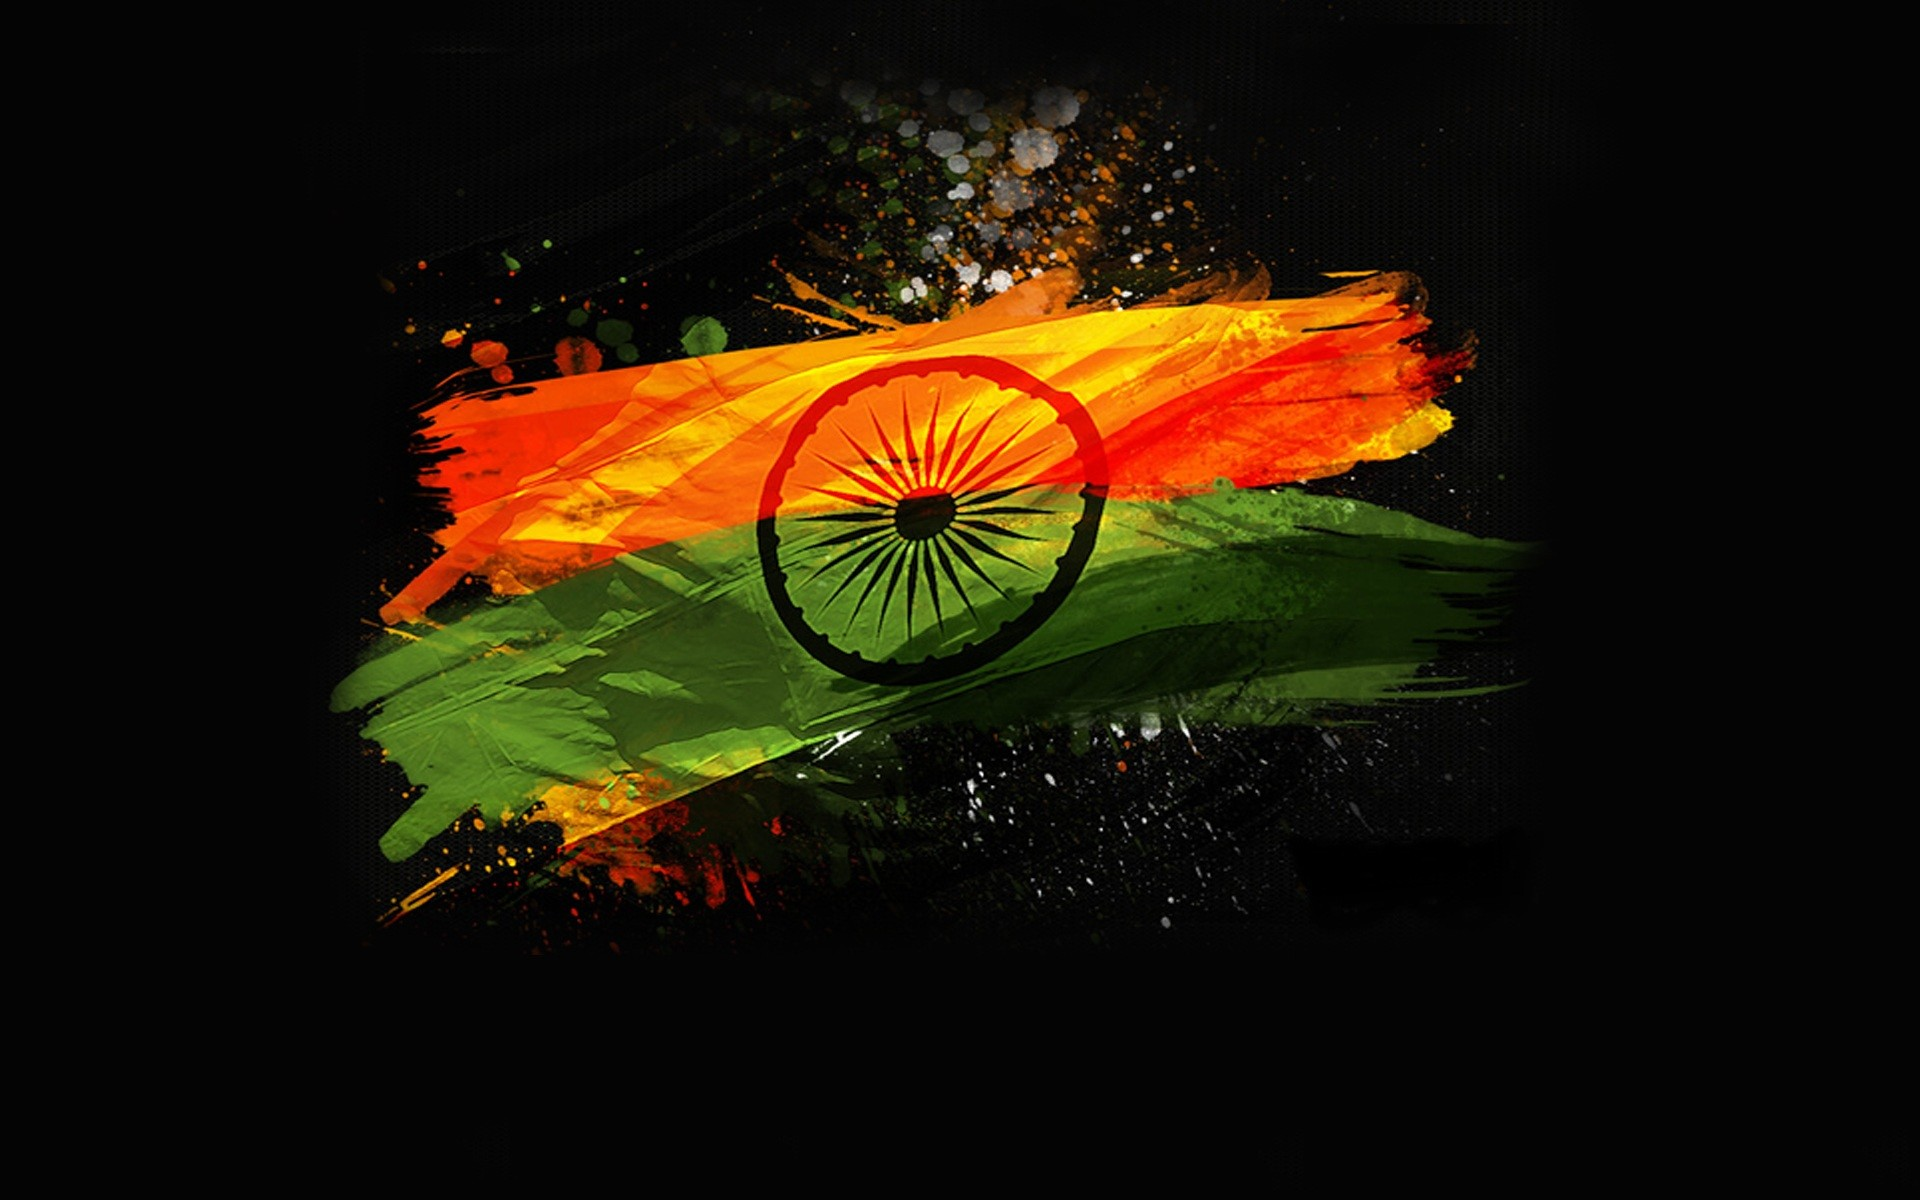 Indian Flag Mobile 3D wallpaper 2018  72  images  File to download for India Flag for Mobile Phone Wallpaper 10 of 17   Proud  to